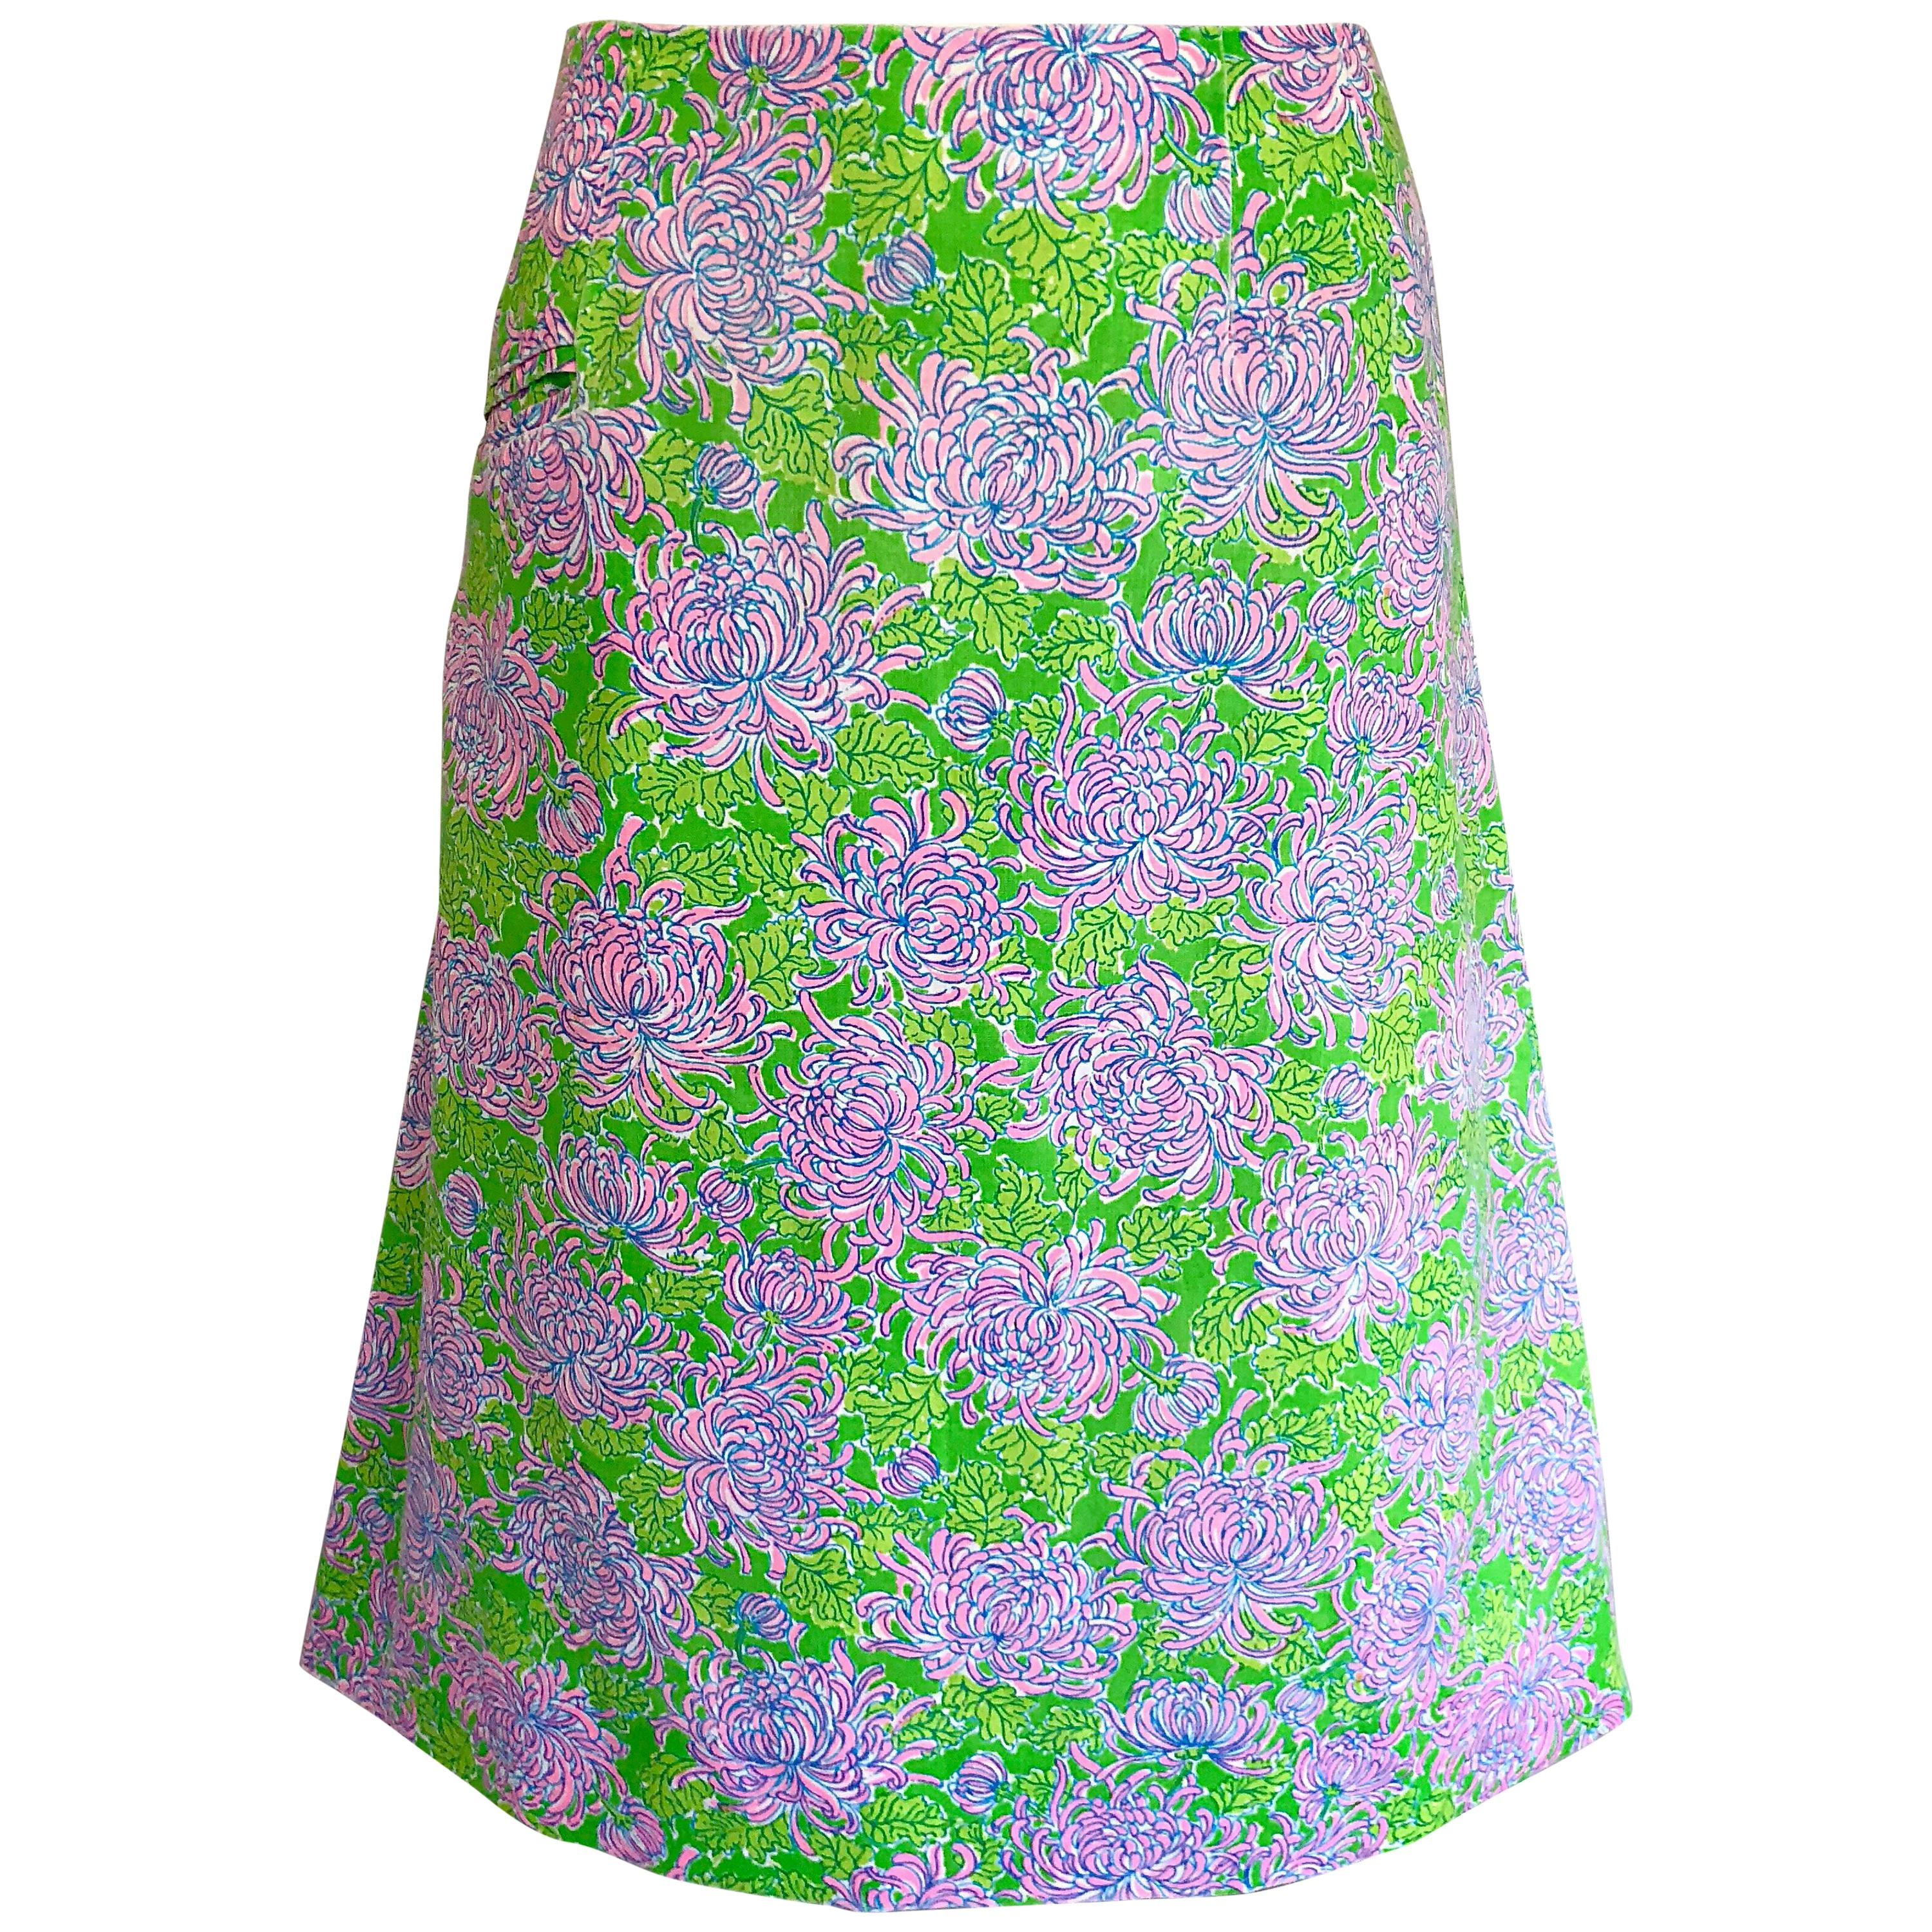 98225459c 1960s Lilly Pulitzer Neon Green + Pink Flower Print 60s Vintage A - Line  Skirt For Sale at 1stdibs